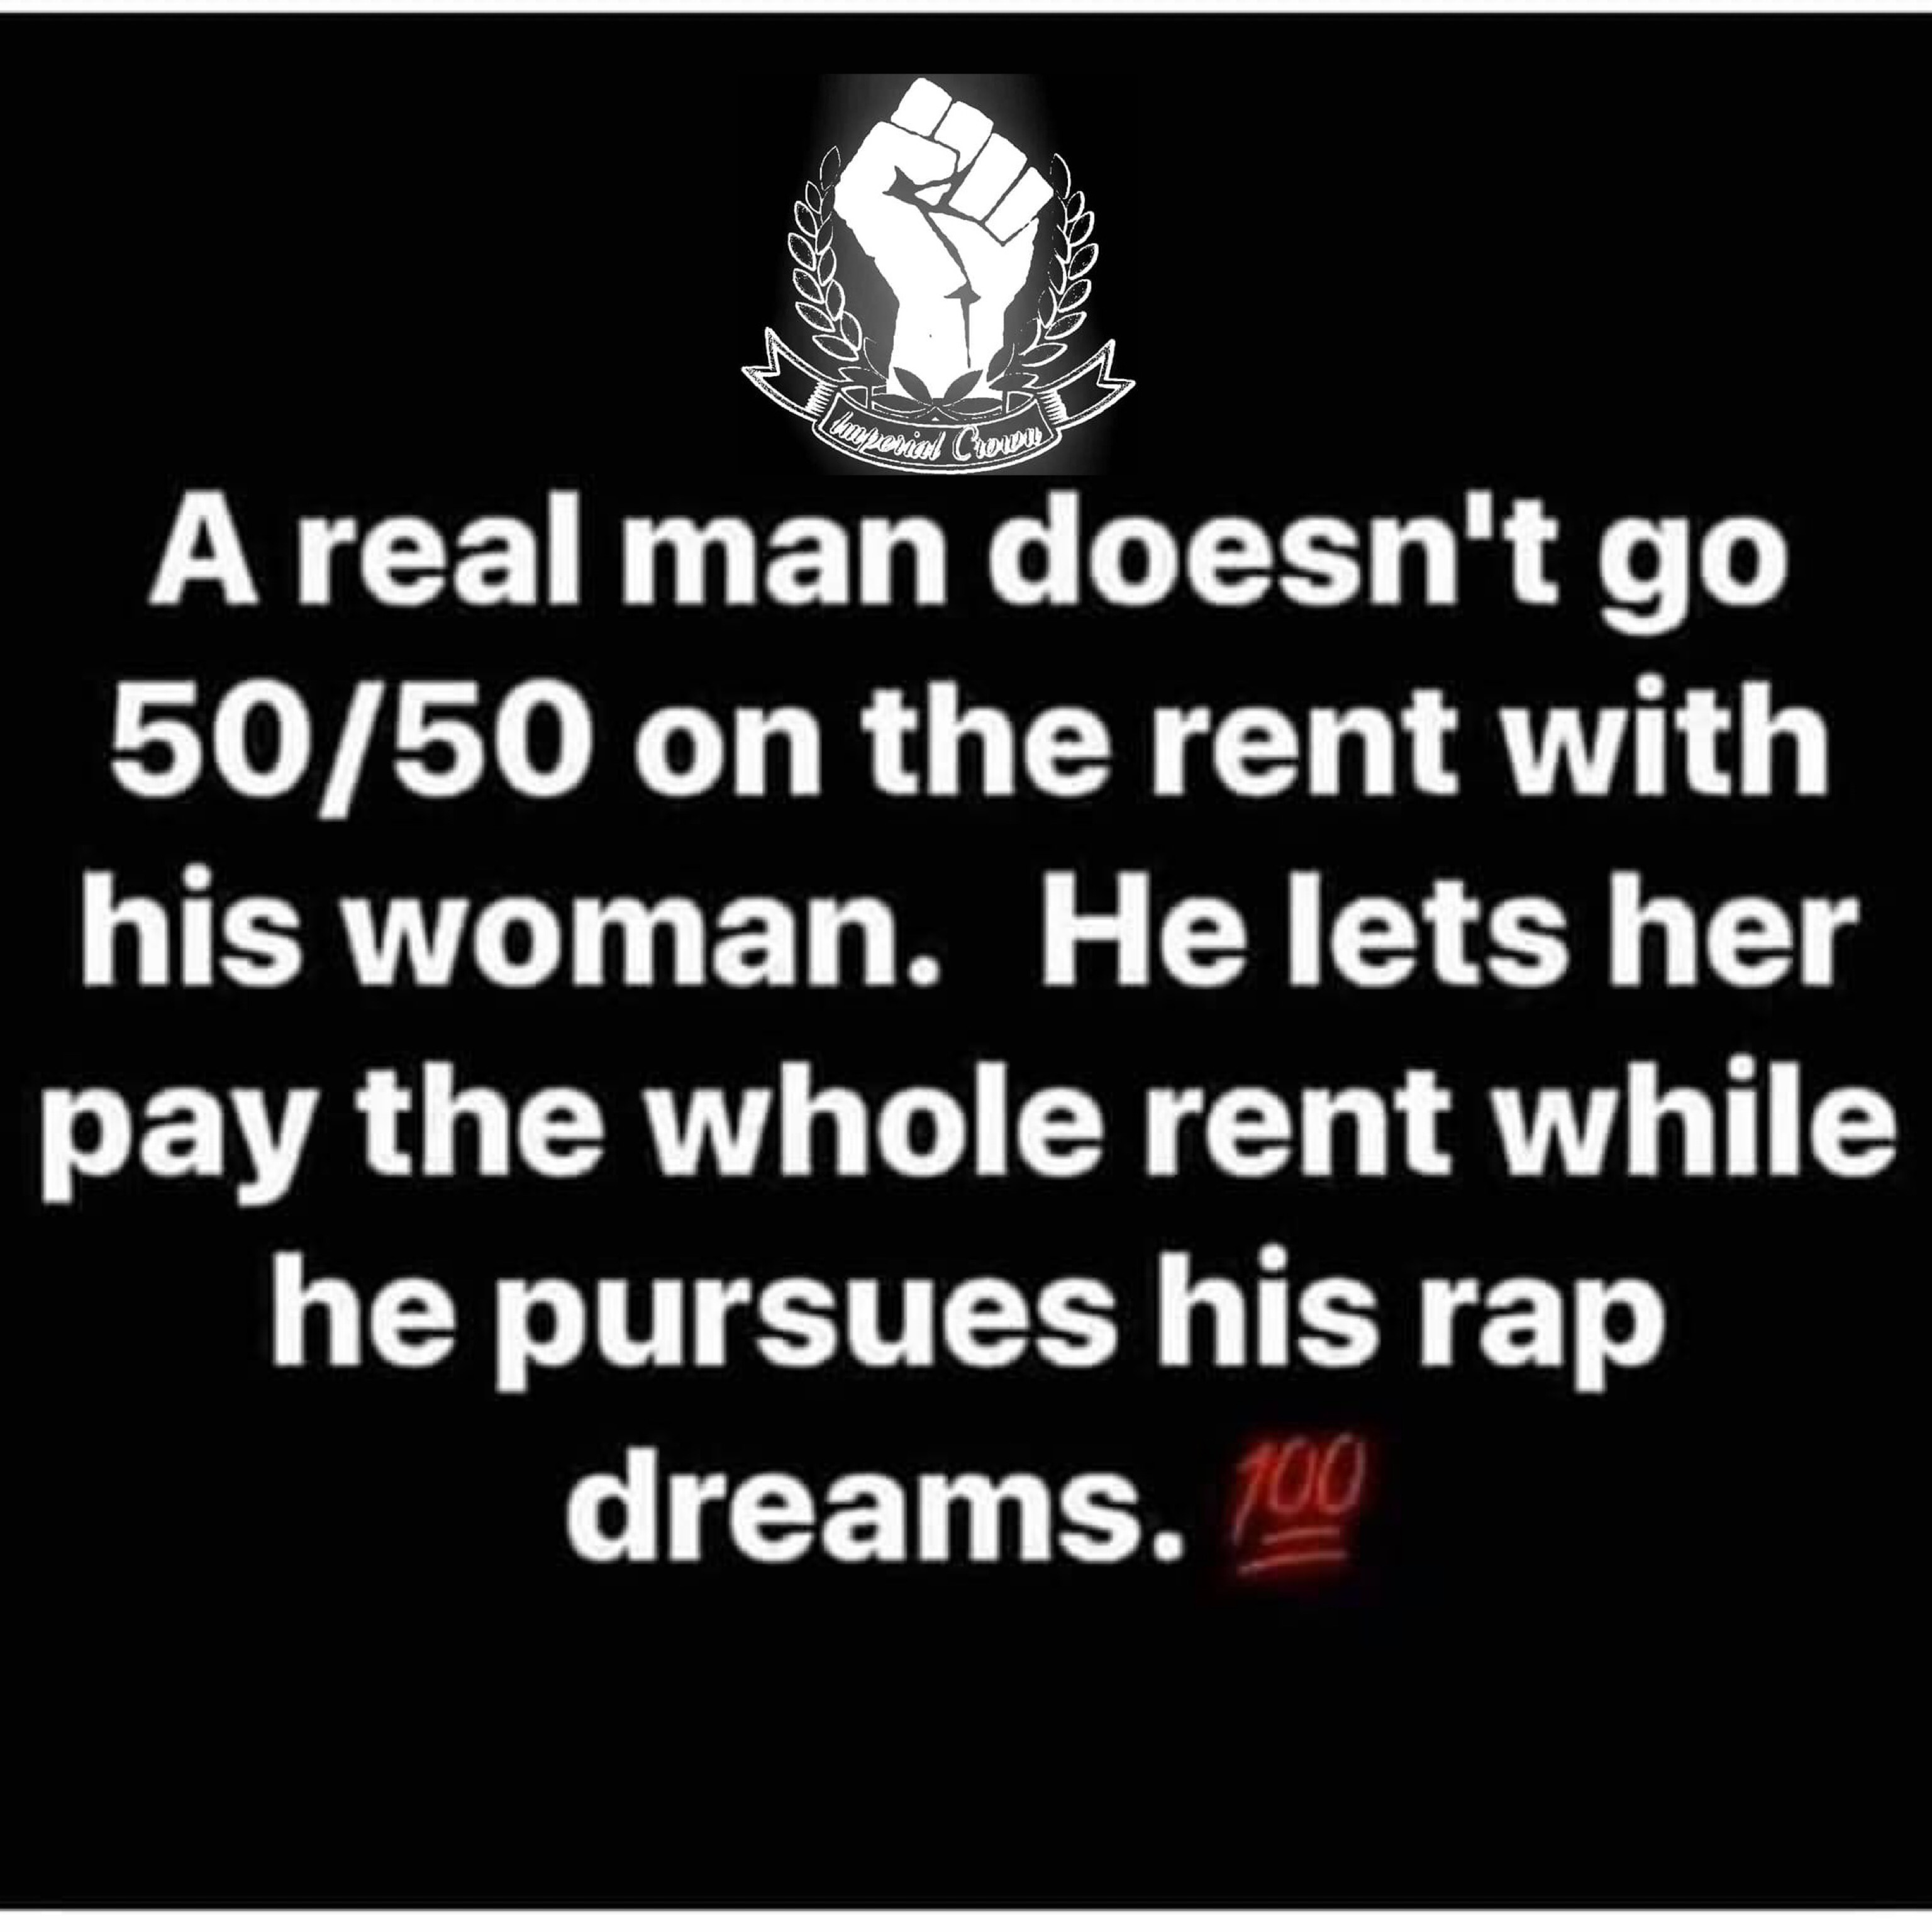 A real man doesn't go 50/50 on the rent with his woman